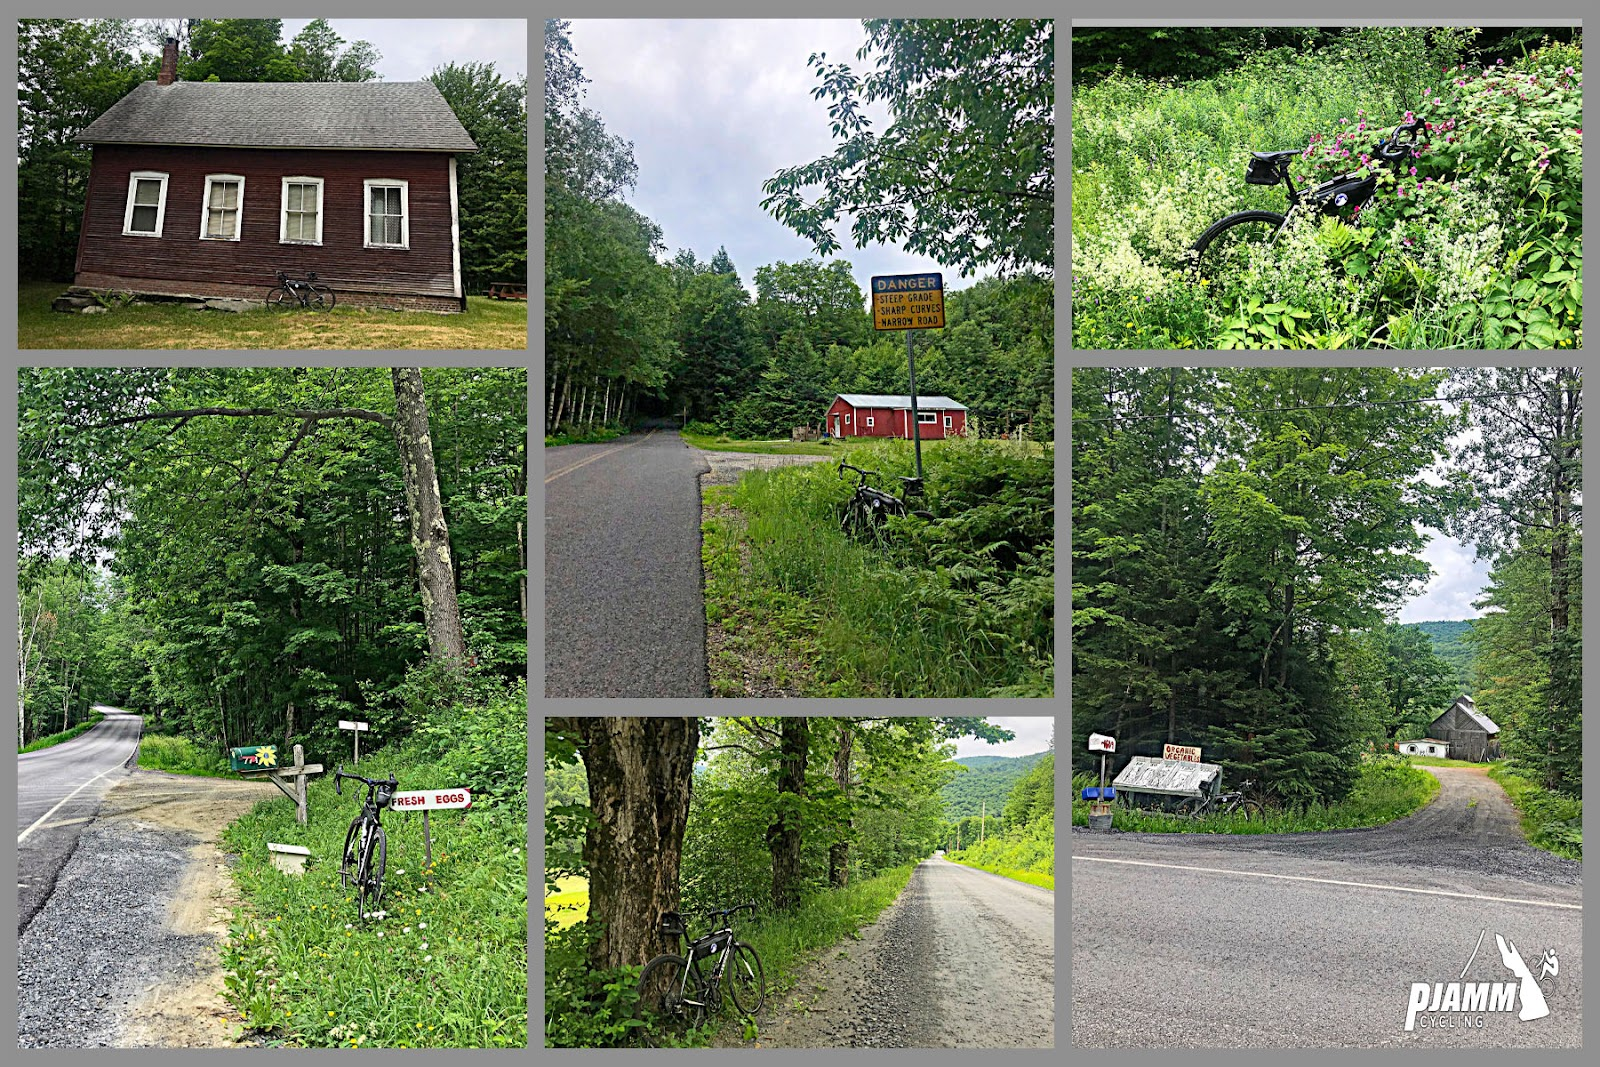 Cycling Lincoln Gap East - photo collage, red wooden building with four white-trimmed windows, bike leaning against building, Danger Sharp Curves yellow road sign along greenery on roadway, bike parked in dense, tall grass with pink flowers